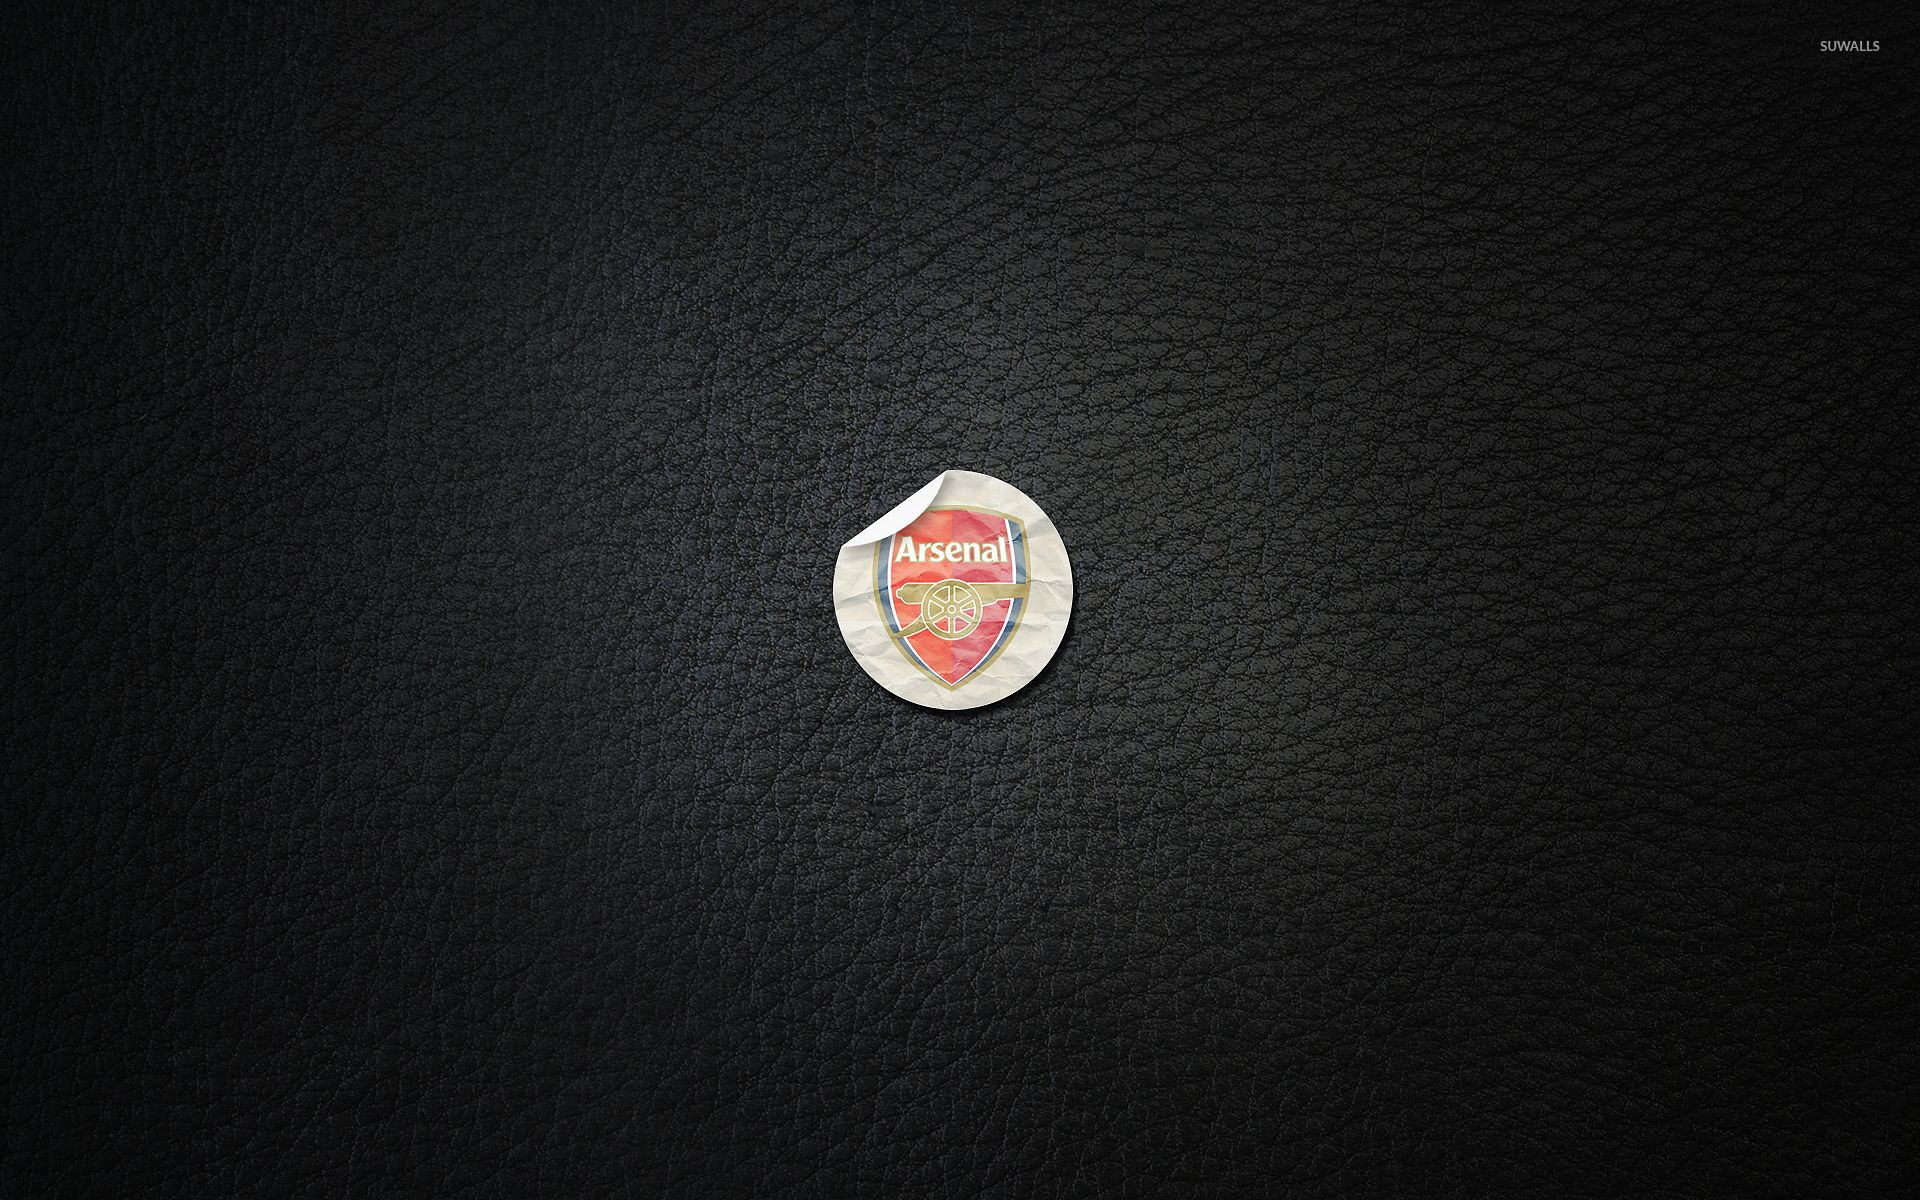 1920x1200 Arsenal F.C. on black leather wallpaper - Sport wallpapers ...